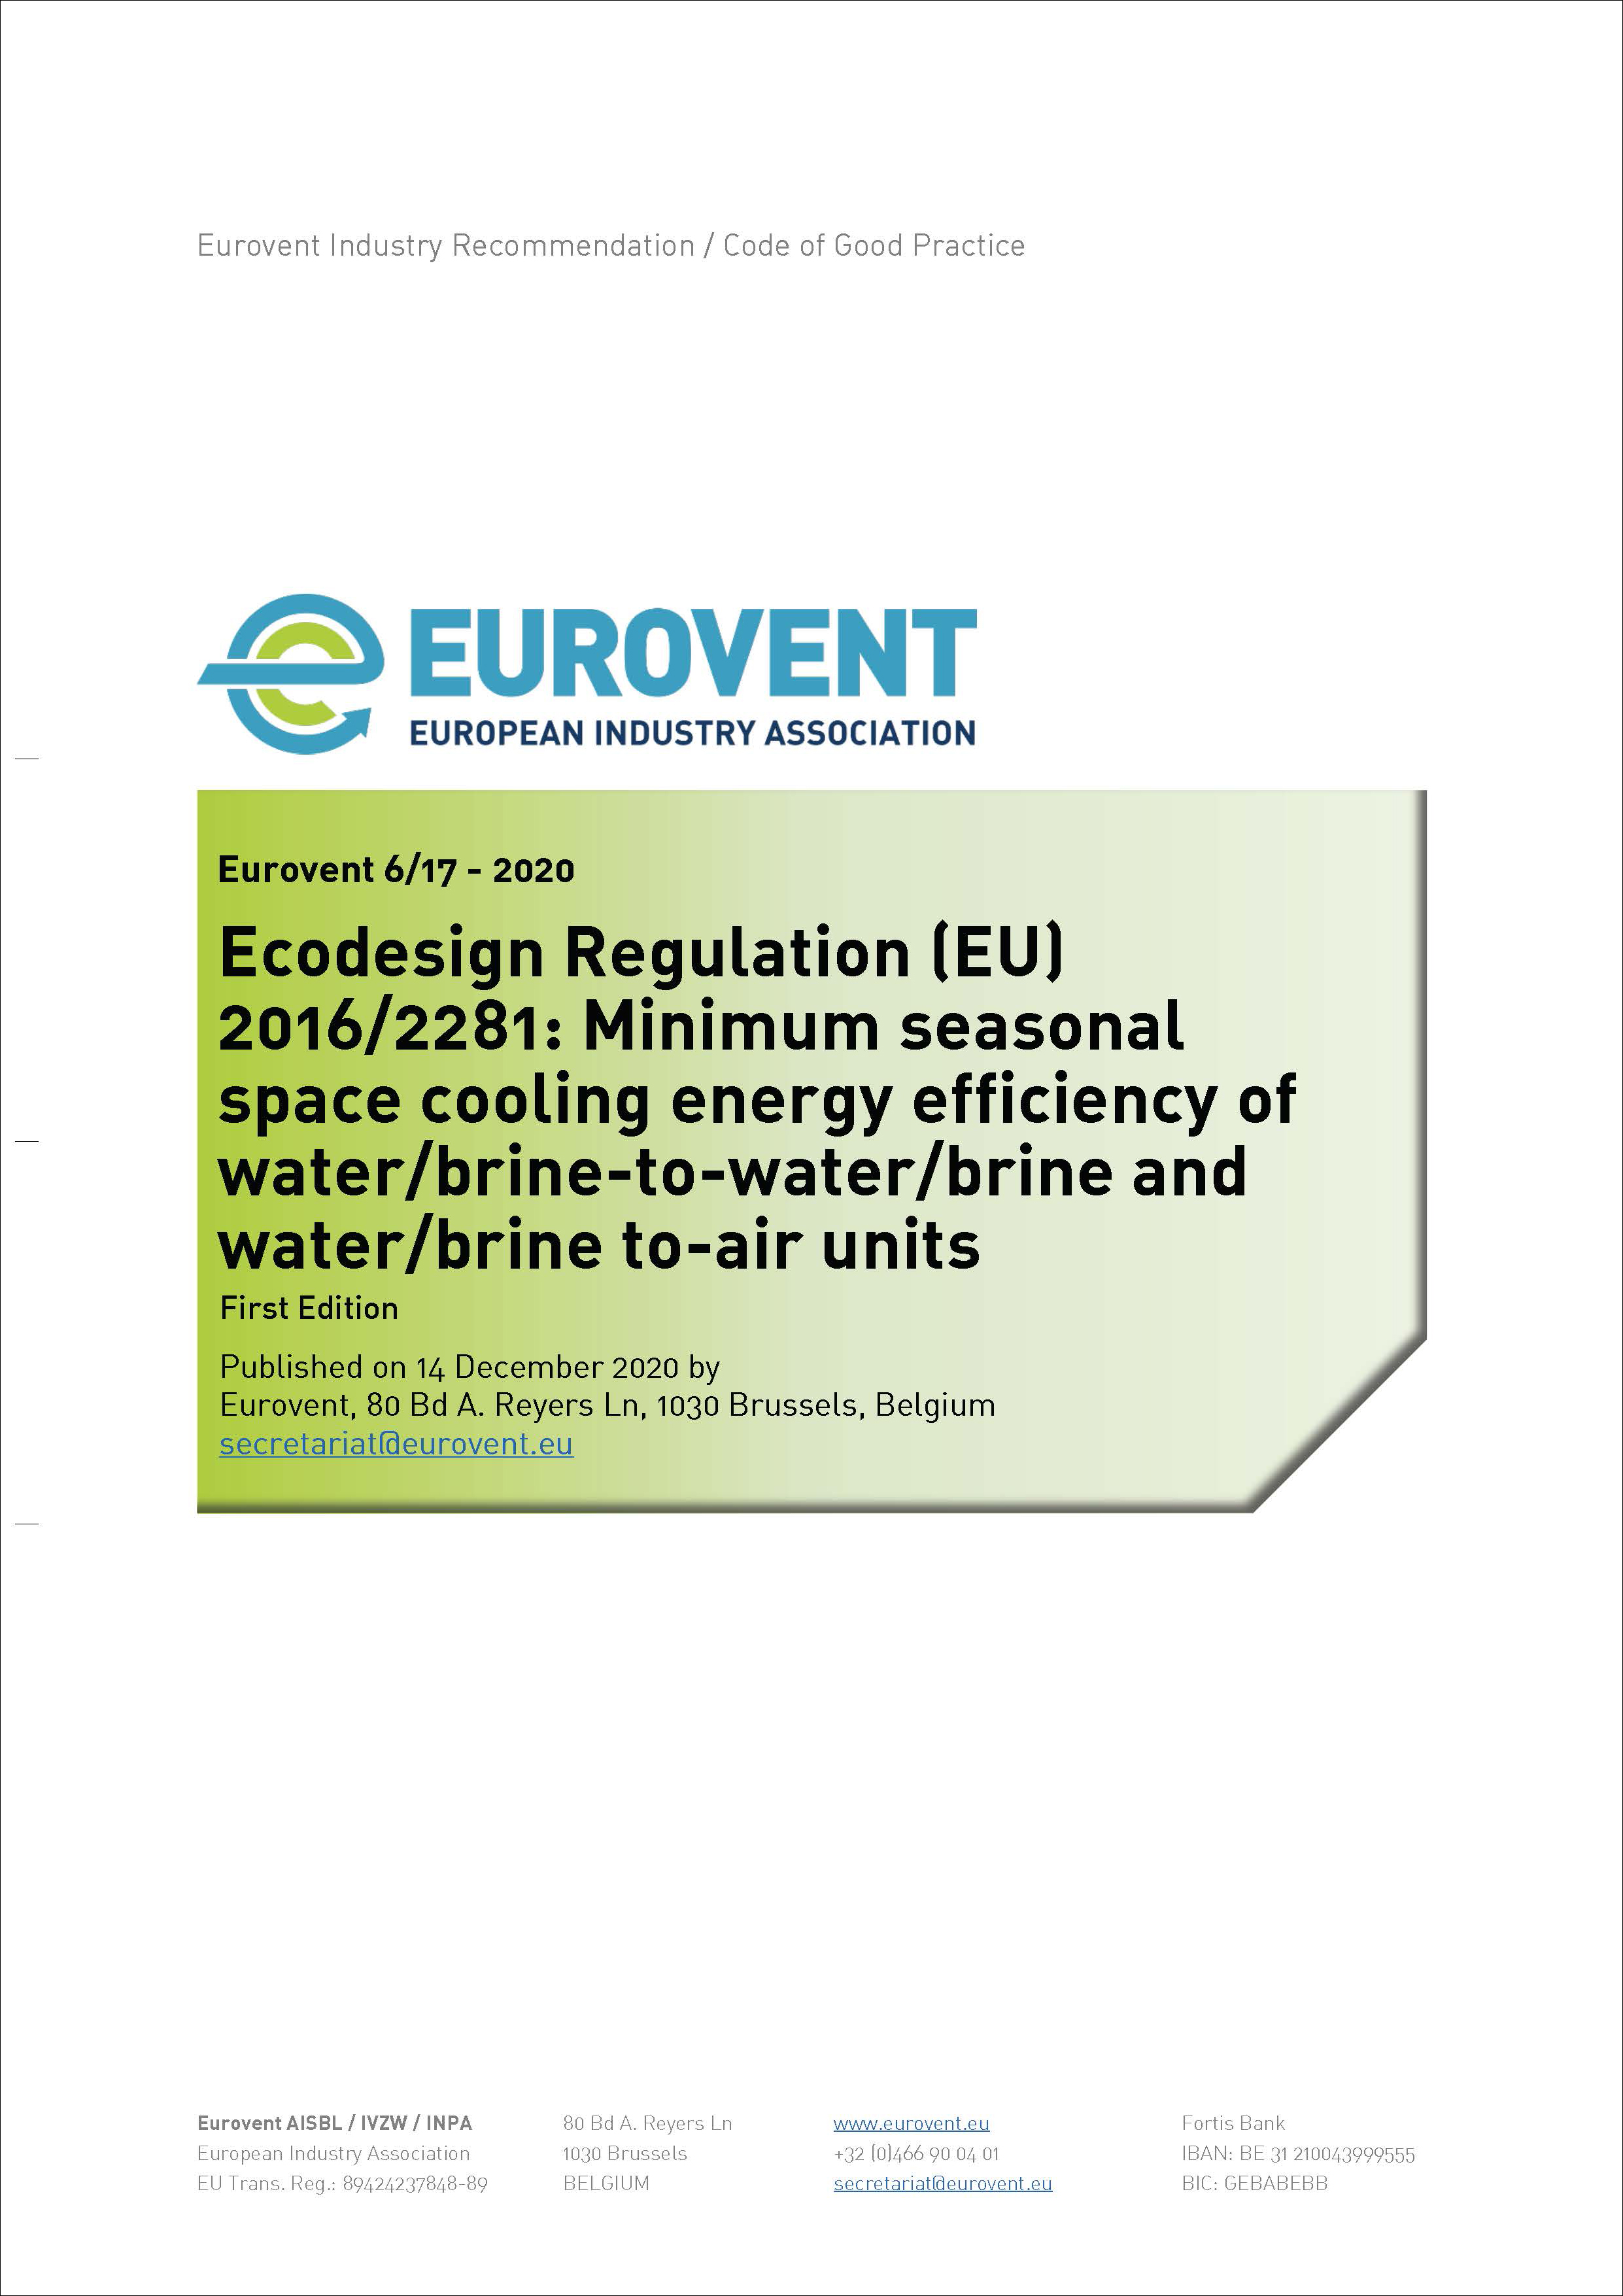 Eurovent 6/17 - 2020: Ecodesign Regulation (EU) 2016/2281: Minimum seasonal space cooling energy efficiency of water/brine-to-water/brine and water/brine to-air units